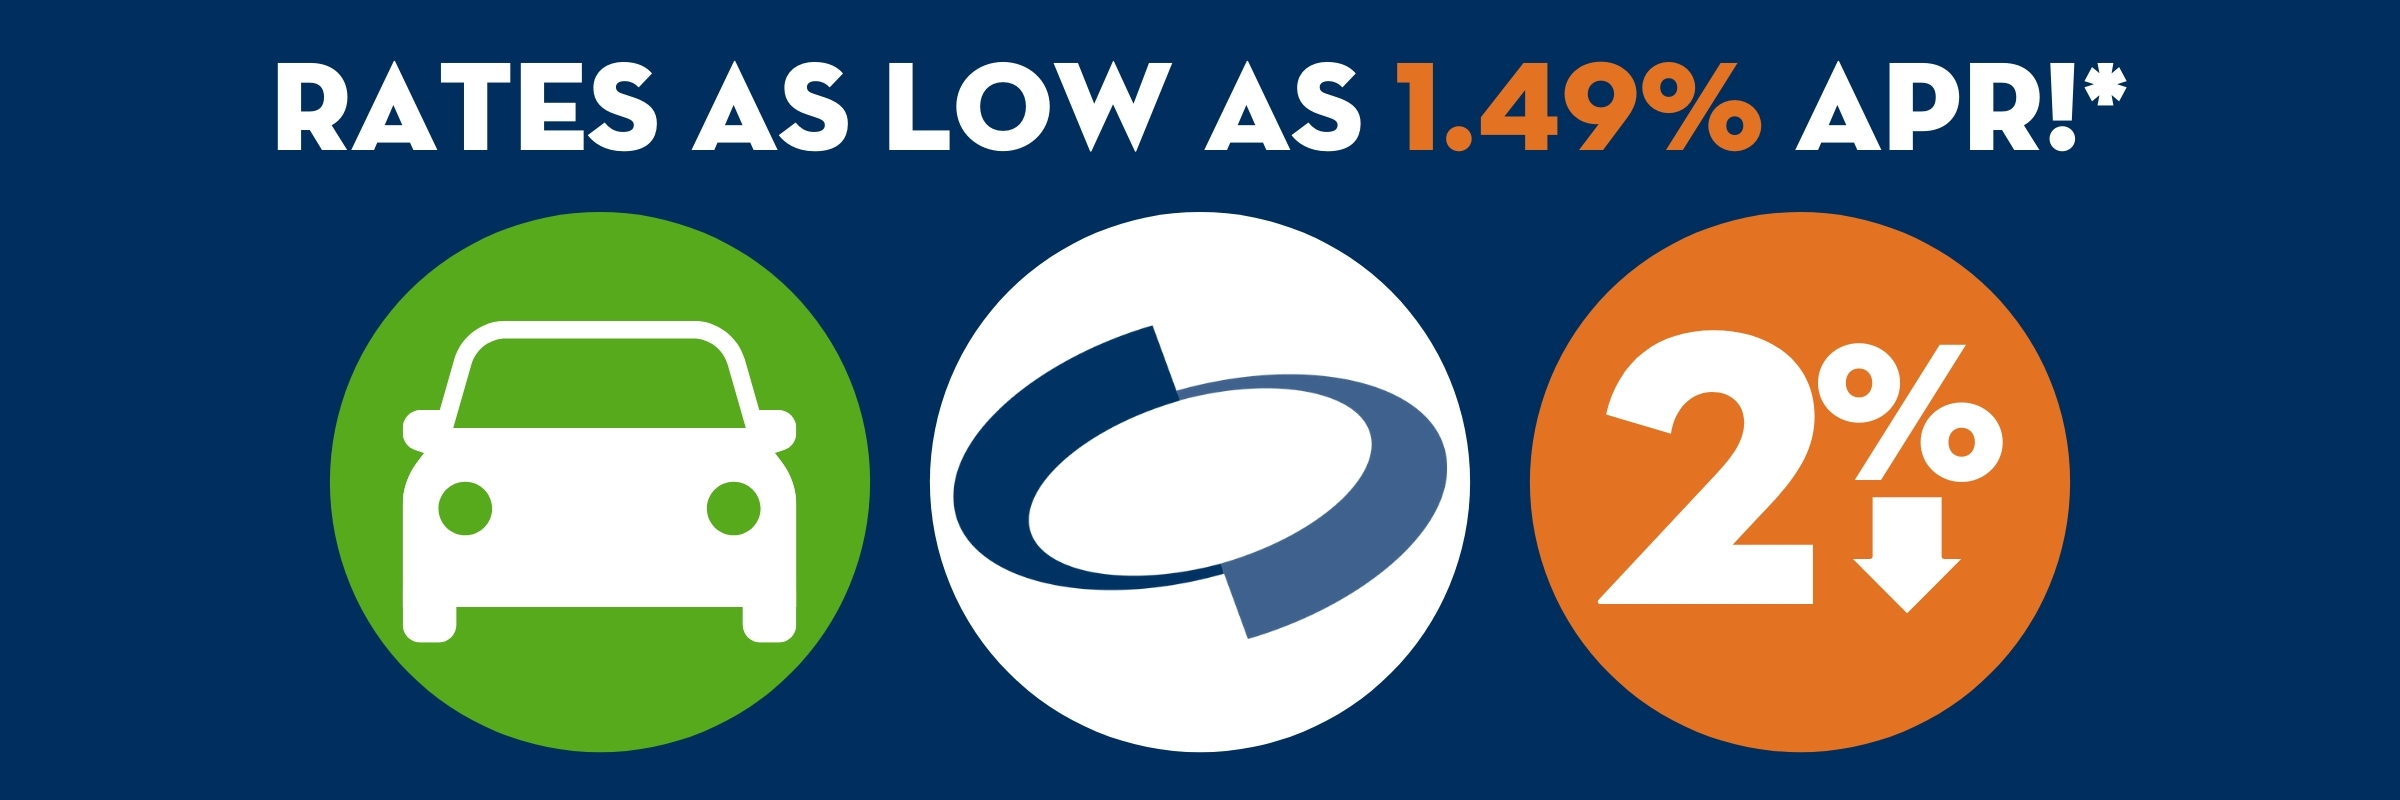 Rates as low as 1.49% APR*